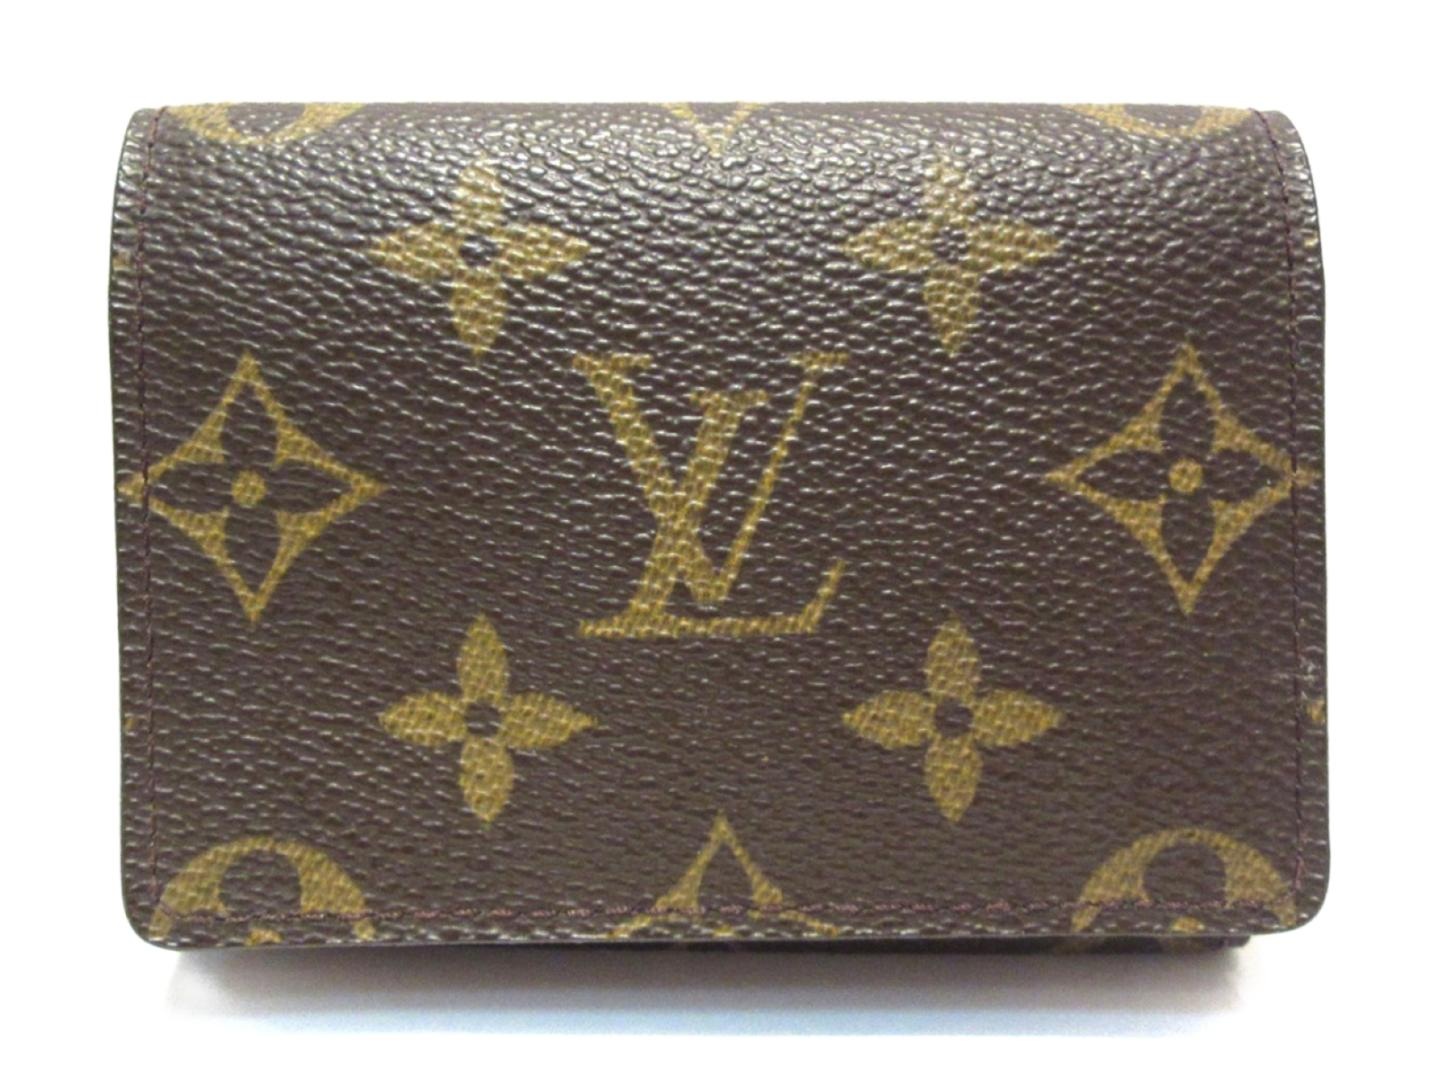 Brandoff Authentic Louis Vuitton Envelope Business Card Holder